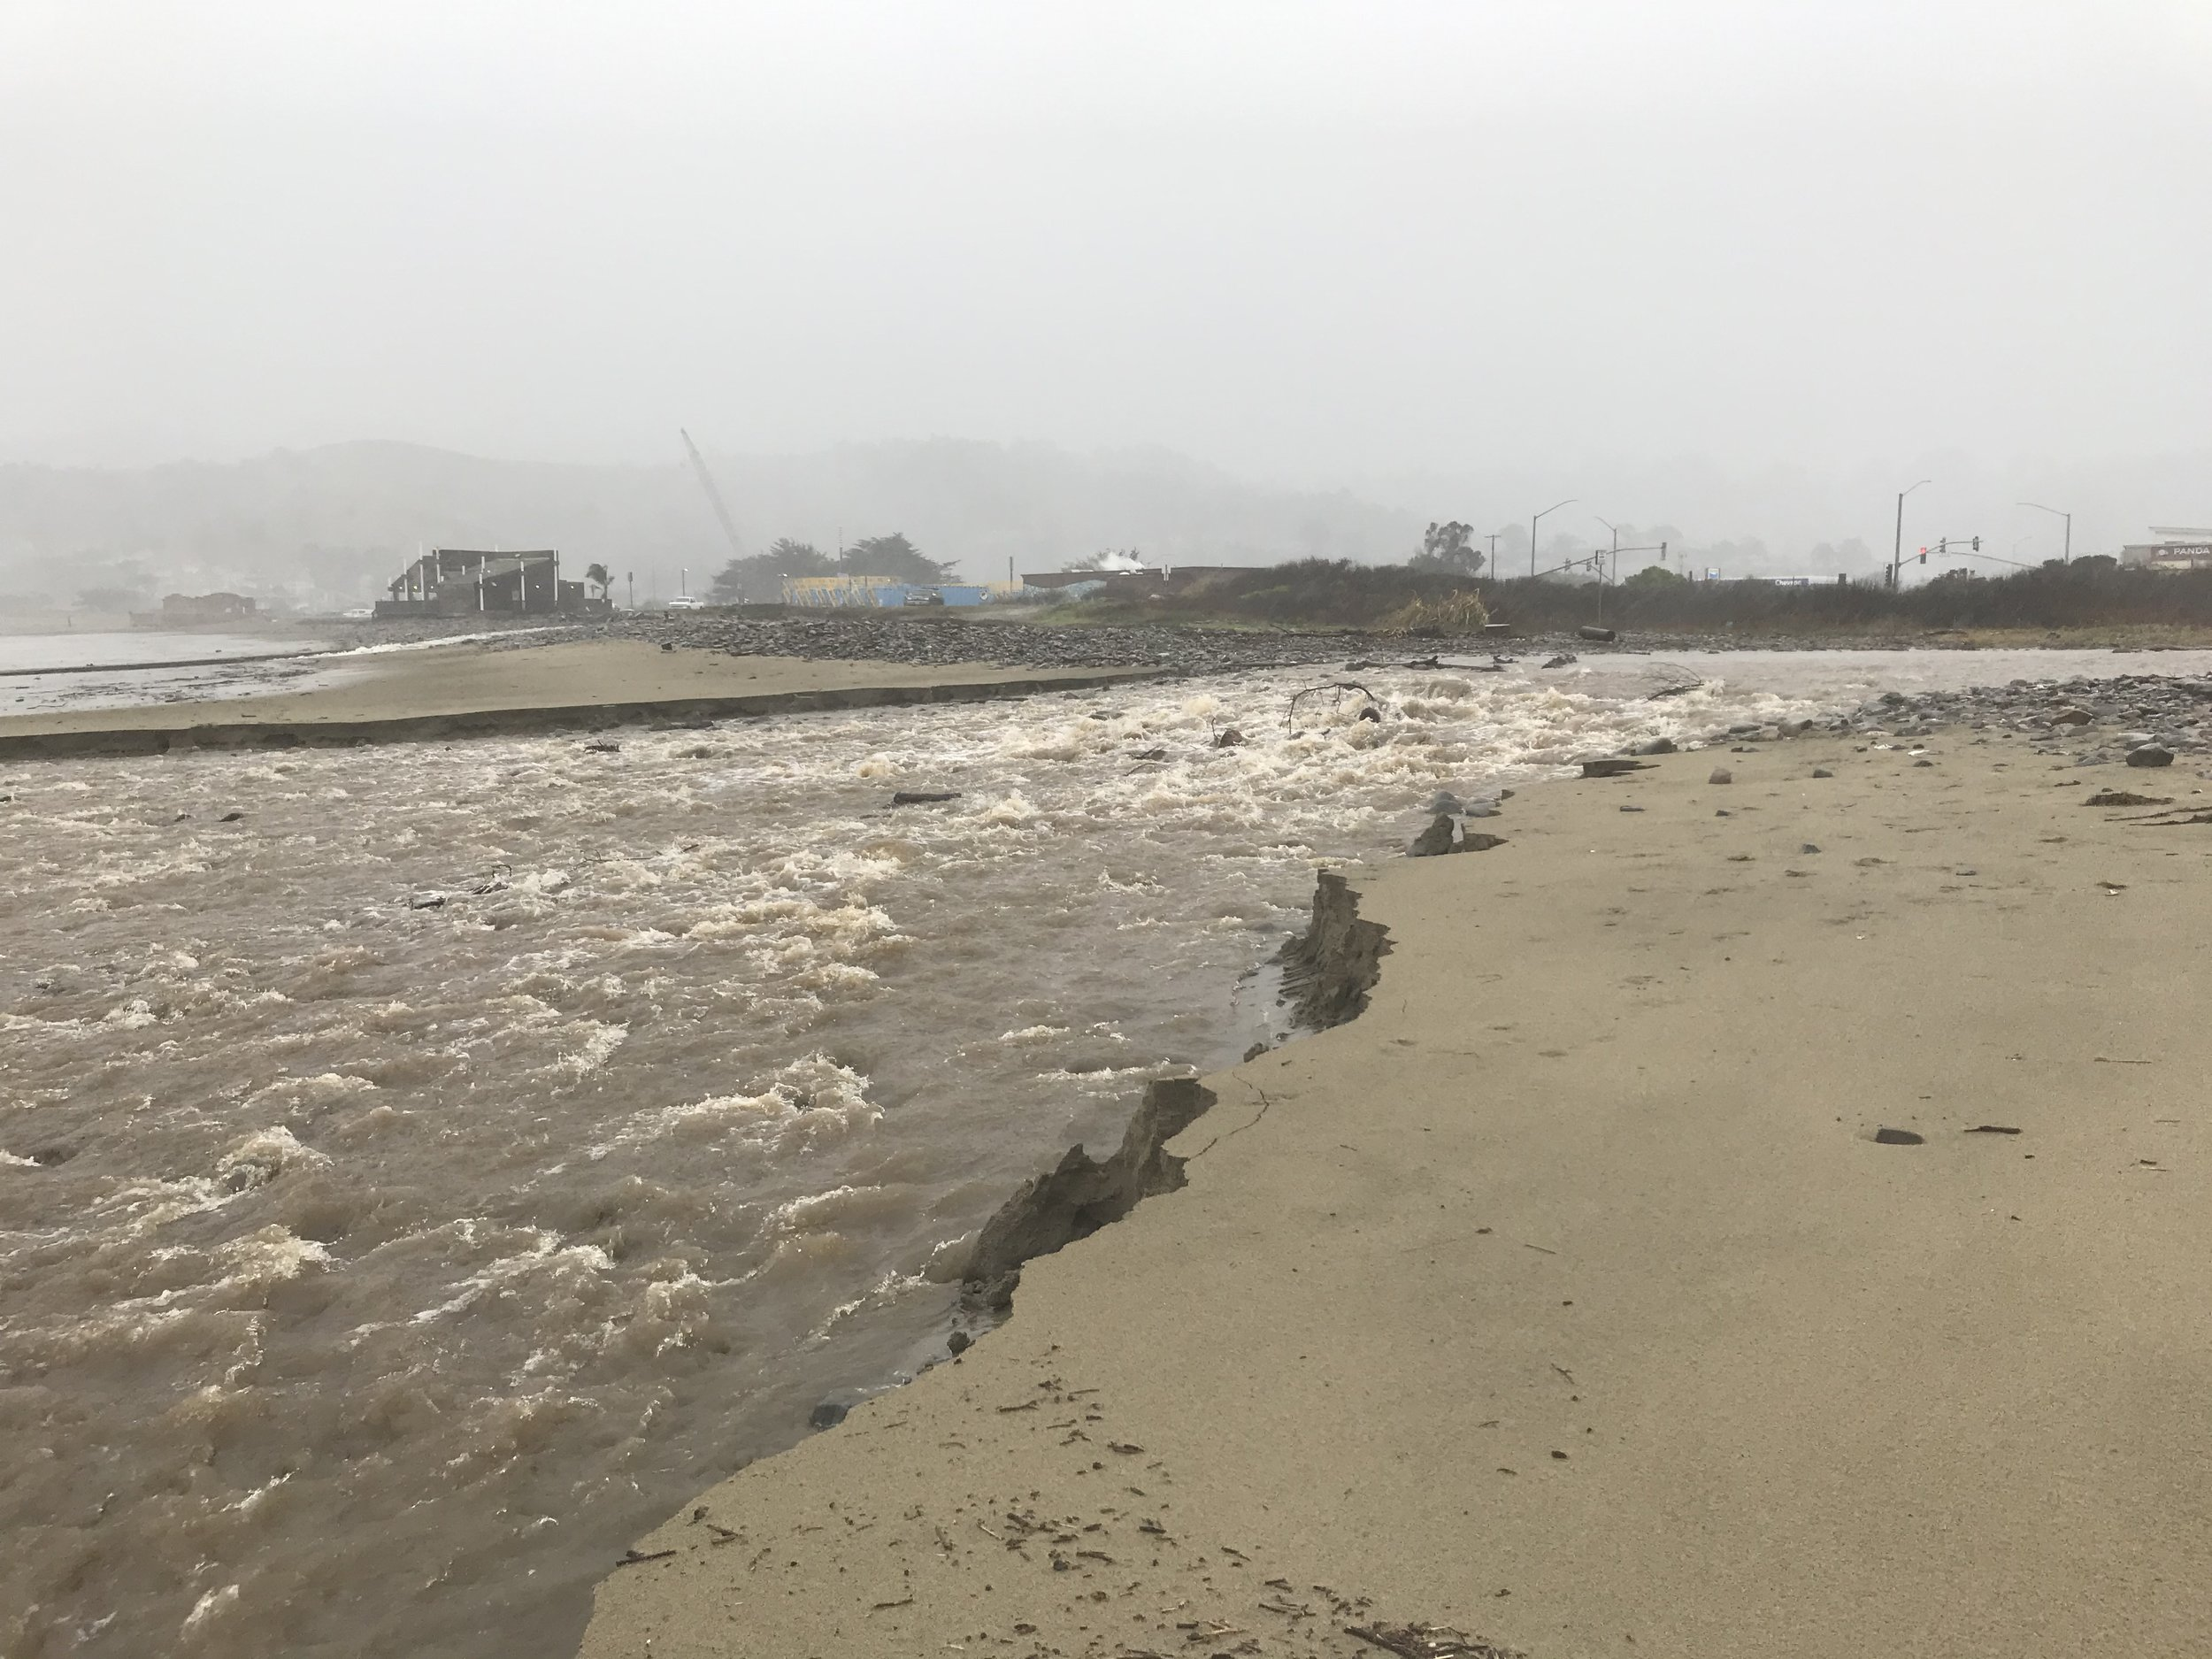 San Pedro Creek entering crossing Linda Mar Beach (foreground). Pacifica's raw sewage crossing the beach (background, in front of Taco Bell).